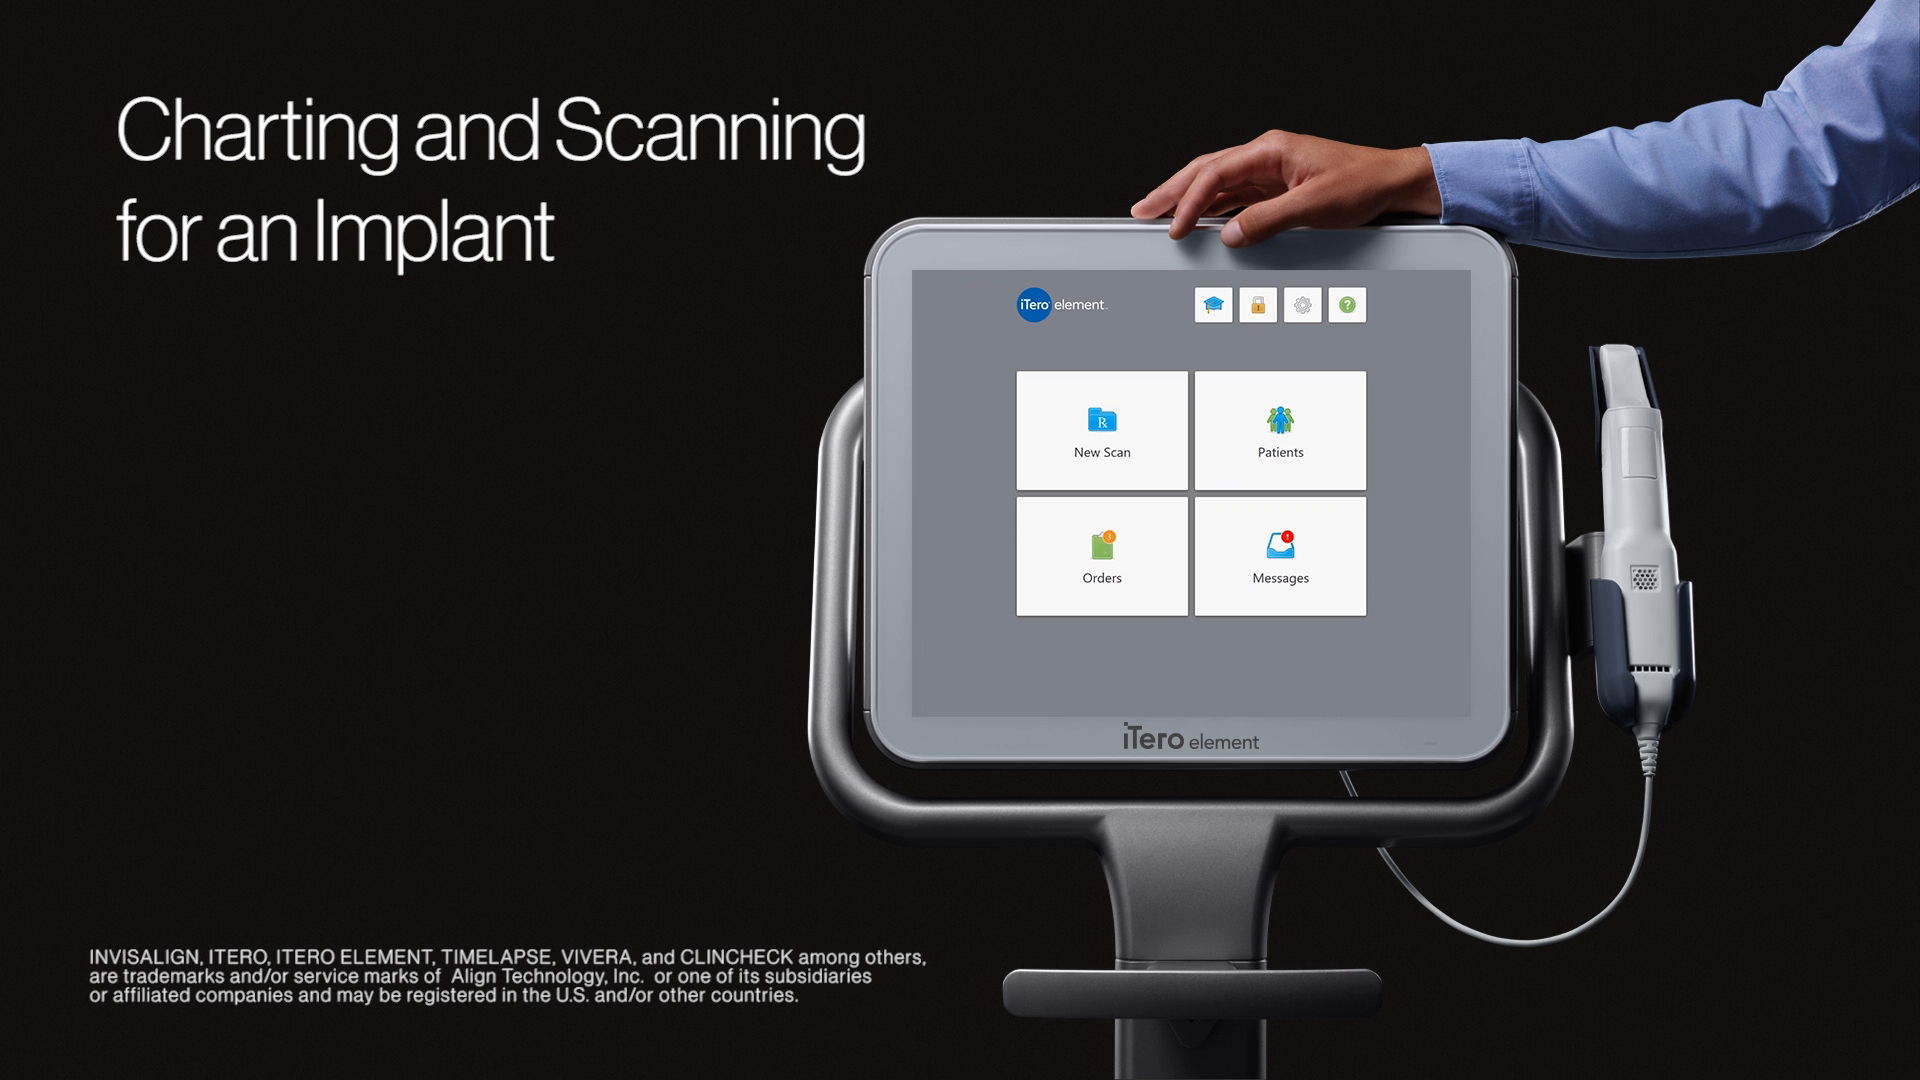 4 minutes:  Charting and Scanning for an Implant